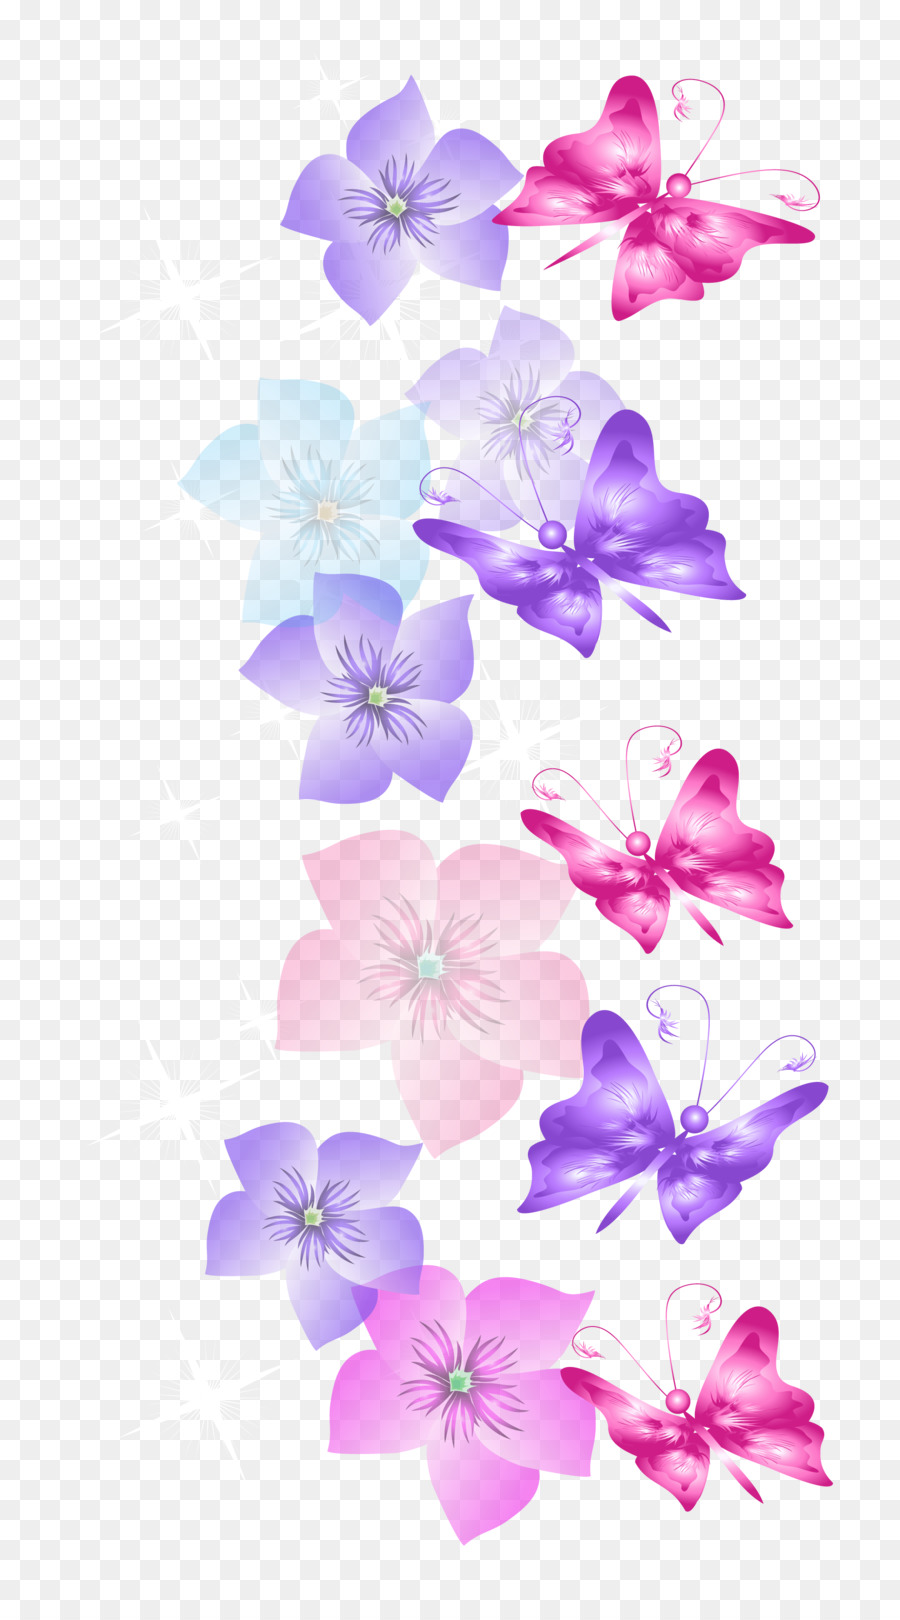 butterfly flower desktop wallpaper clip art - floral png download